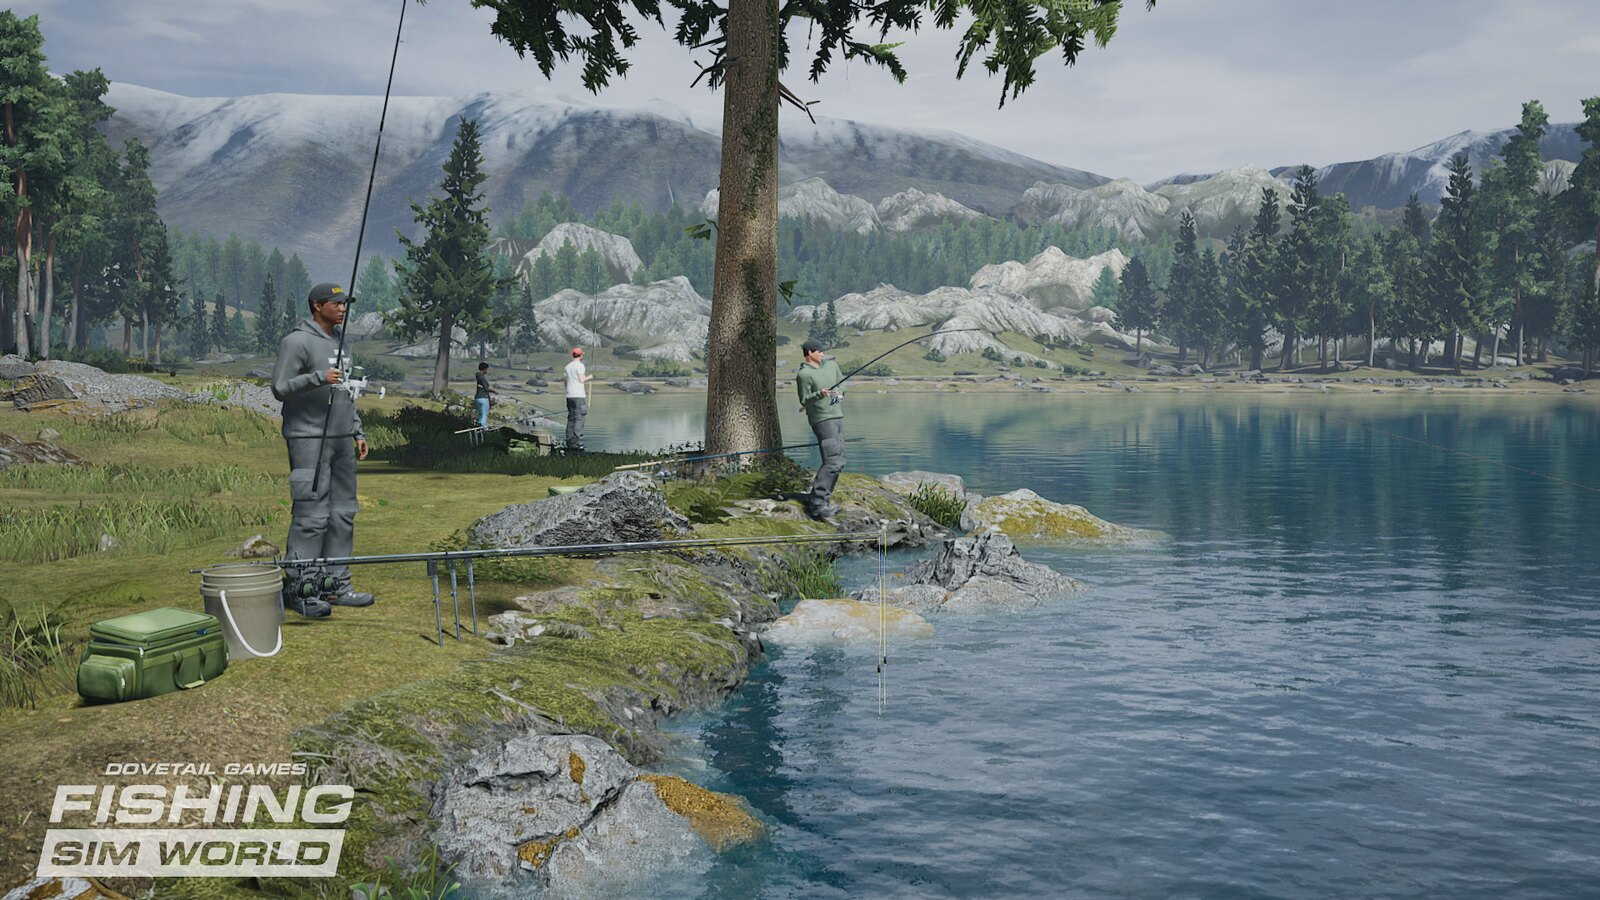 Fishing Sim World Launches Today On PS4 – PlayStation.Blog